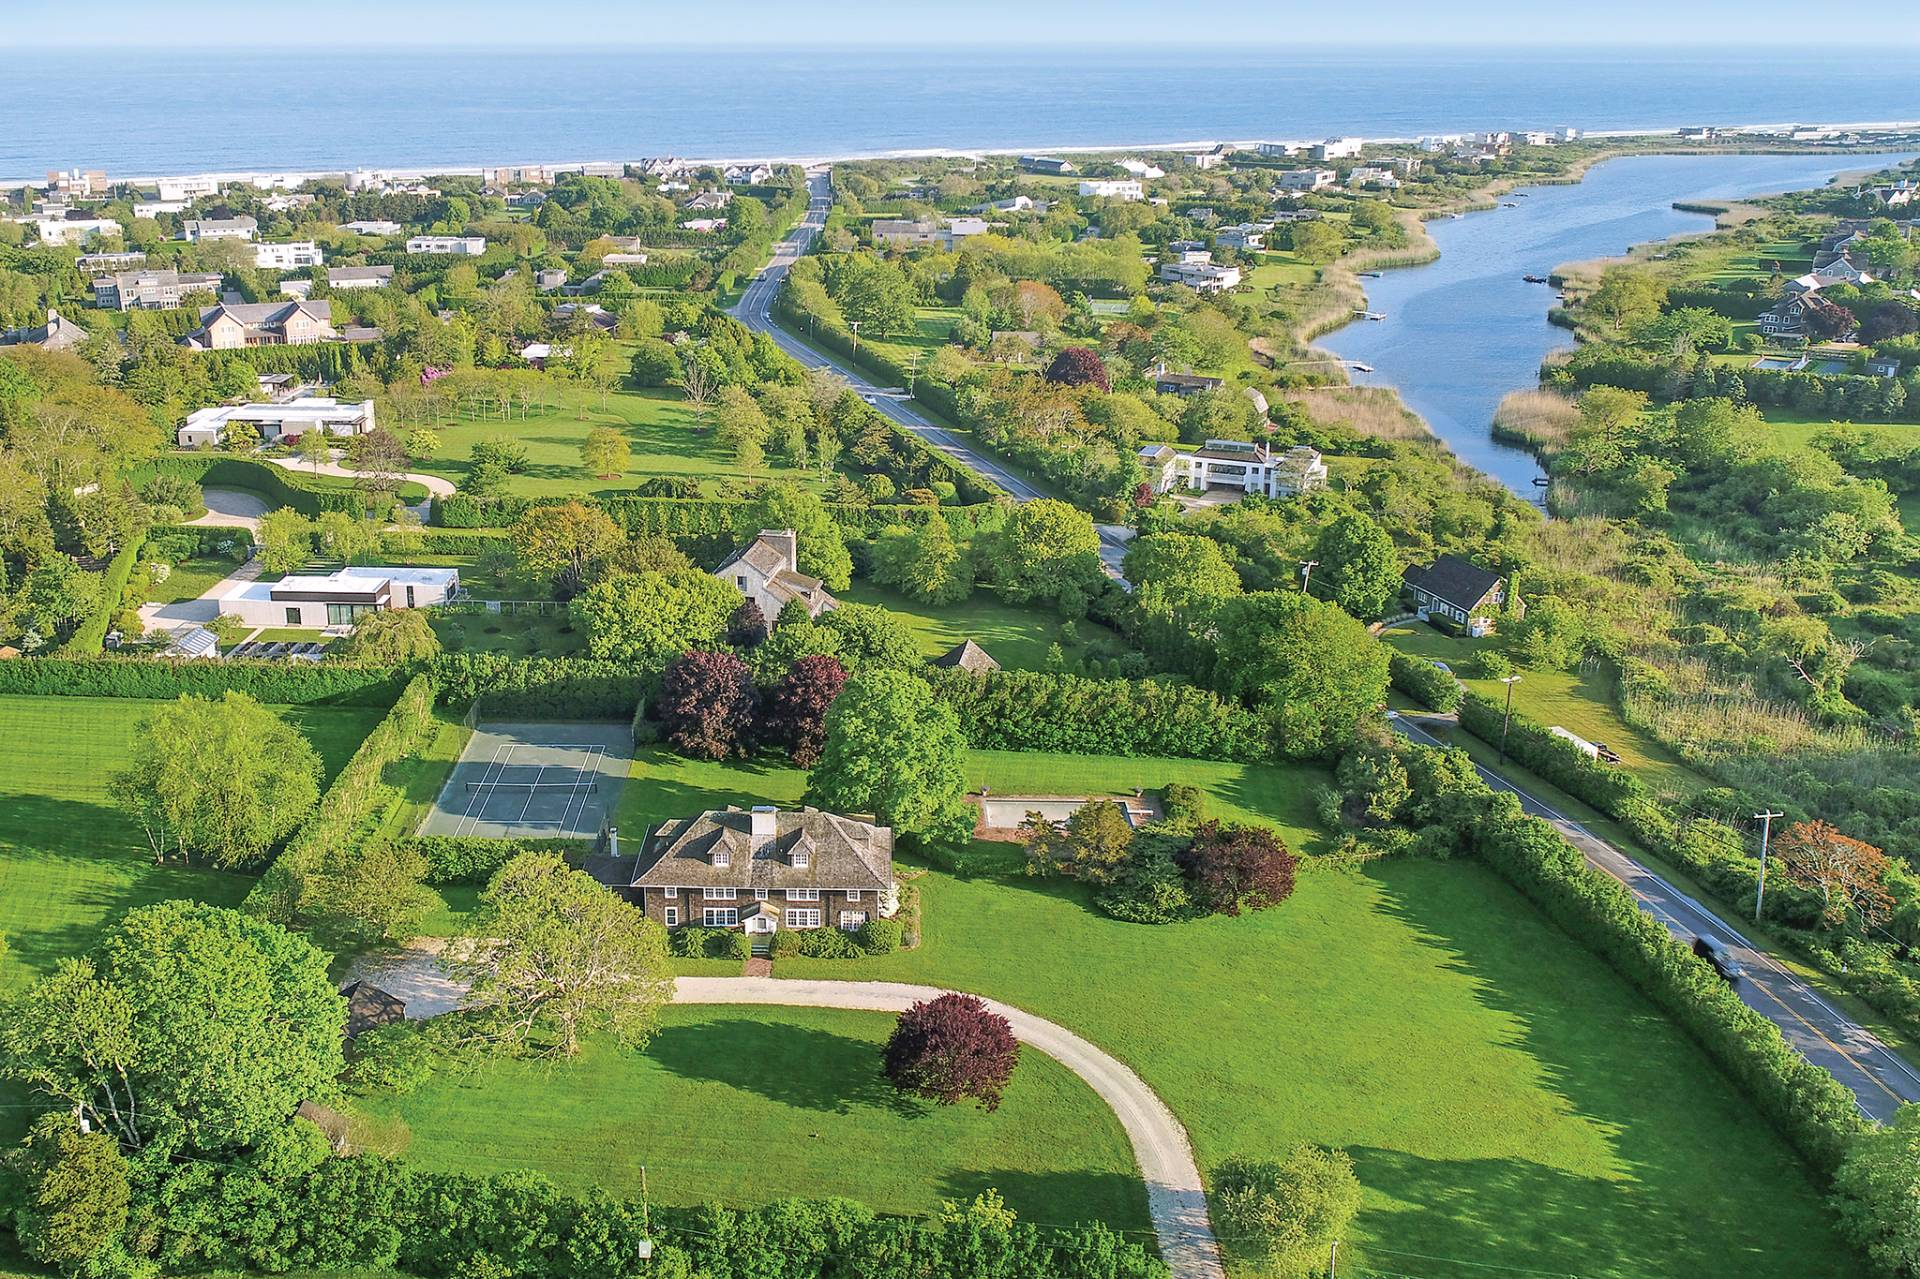 Single Family Home for Sale at Quintessential Quimby 25 Quimby Lane, Bridgehampton, New York